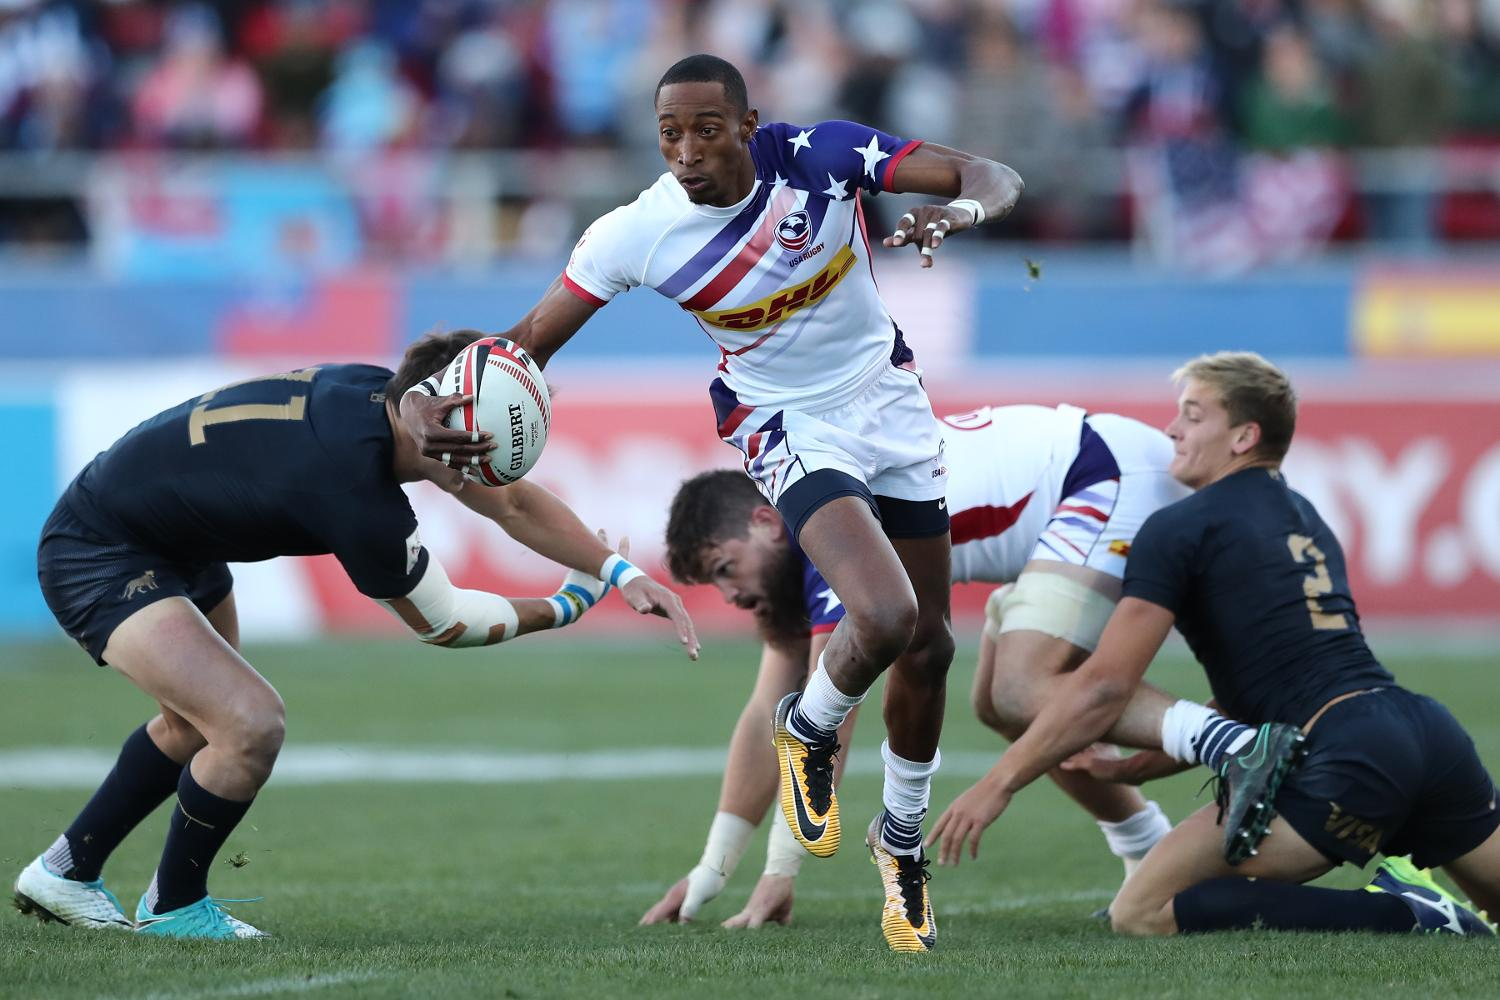 HSBC Sevens Series 2018 Las Vegas Day 3